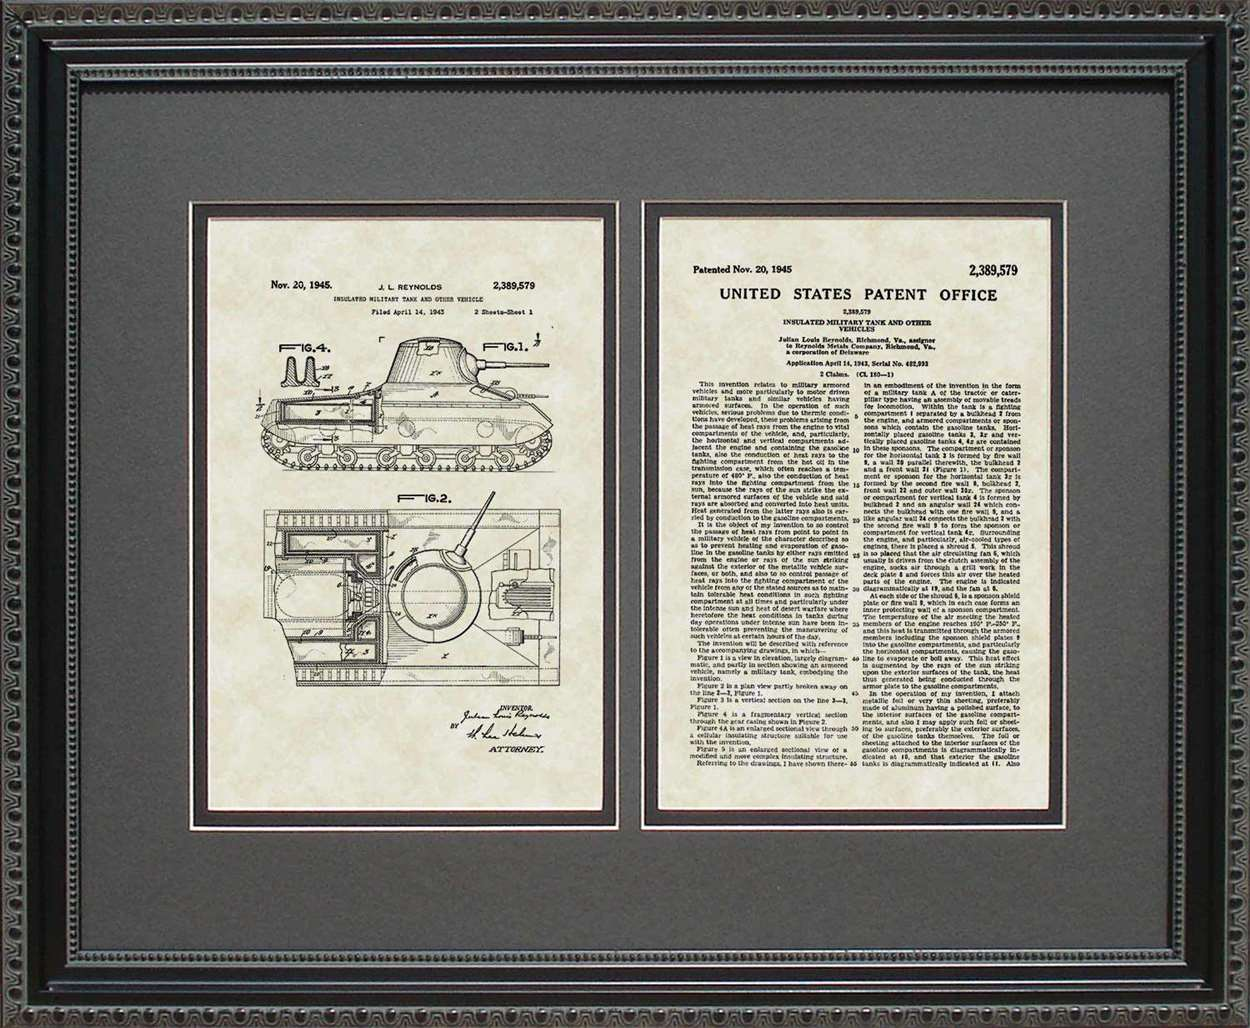 Tank Patent, Art & Copy, Reynolds, 1945, 16x20